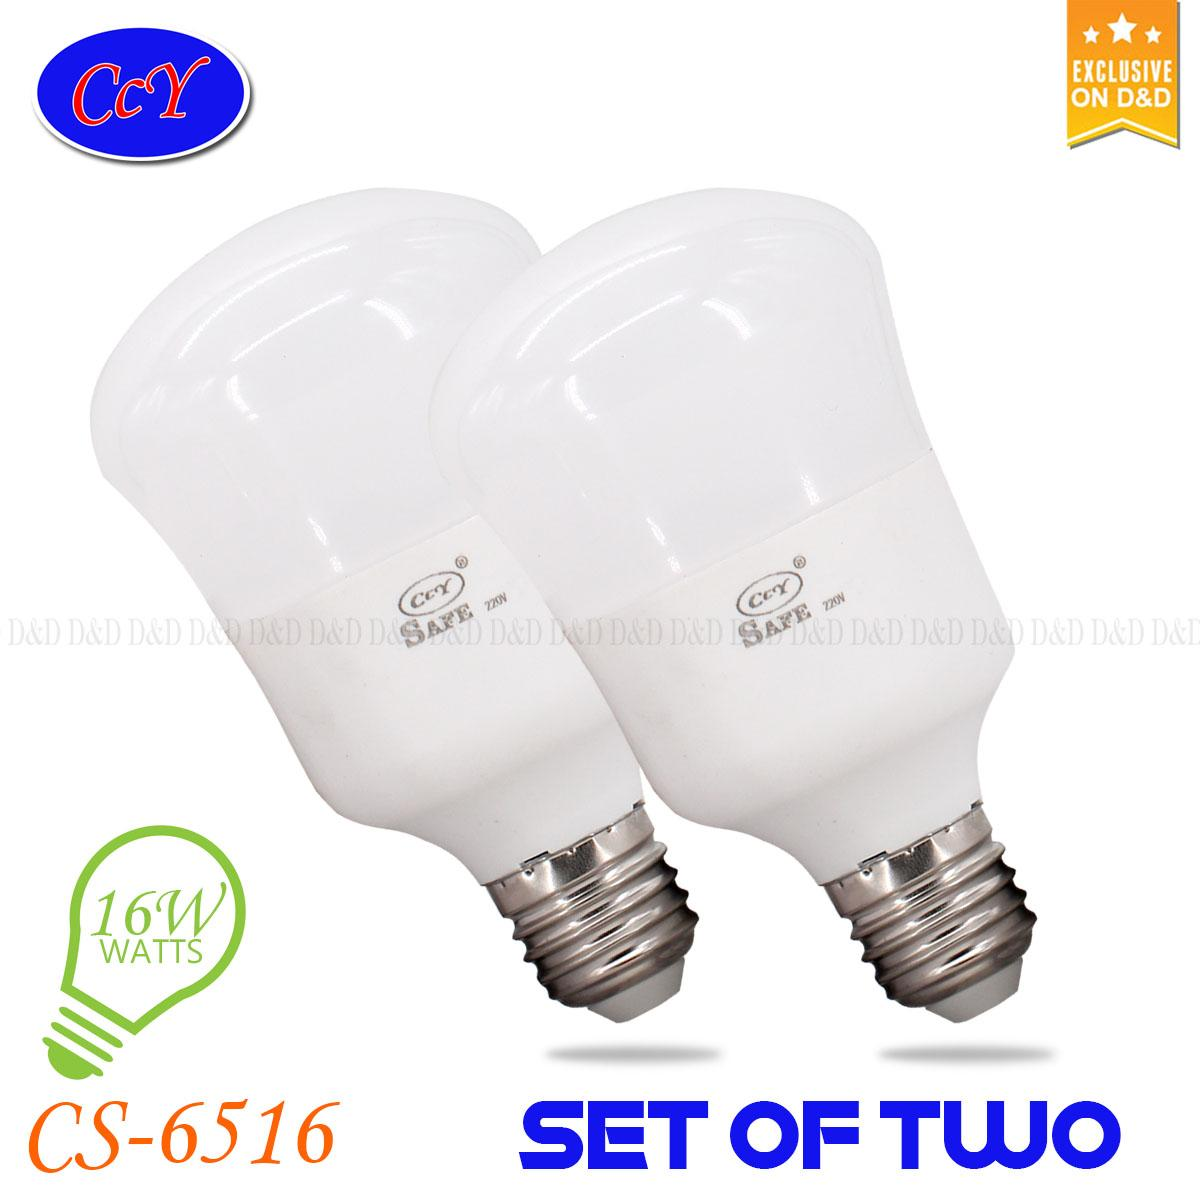 Light Bulbs For Sale Led Prices Brands Review In Driver Design To Replace 100w Ddccy Safe 16 Watts Set Of Two Bulb Energy Savinglong Durationhigh